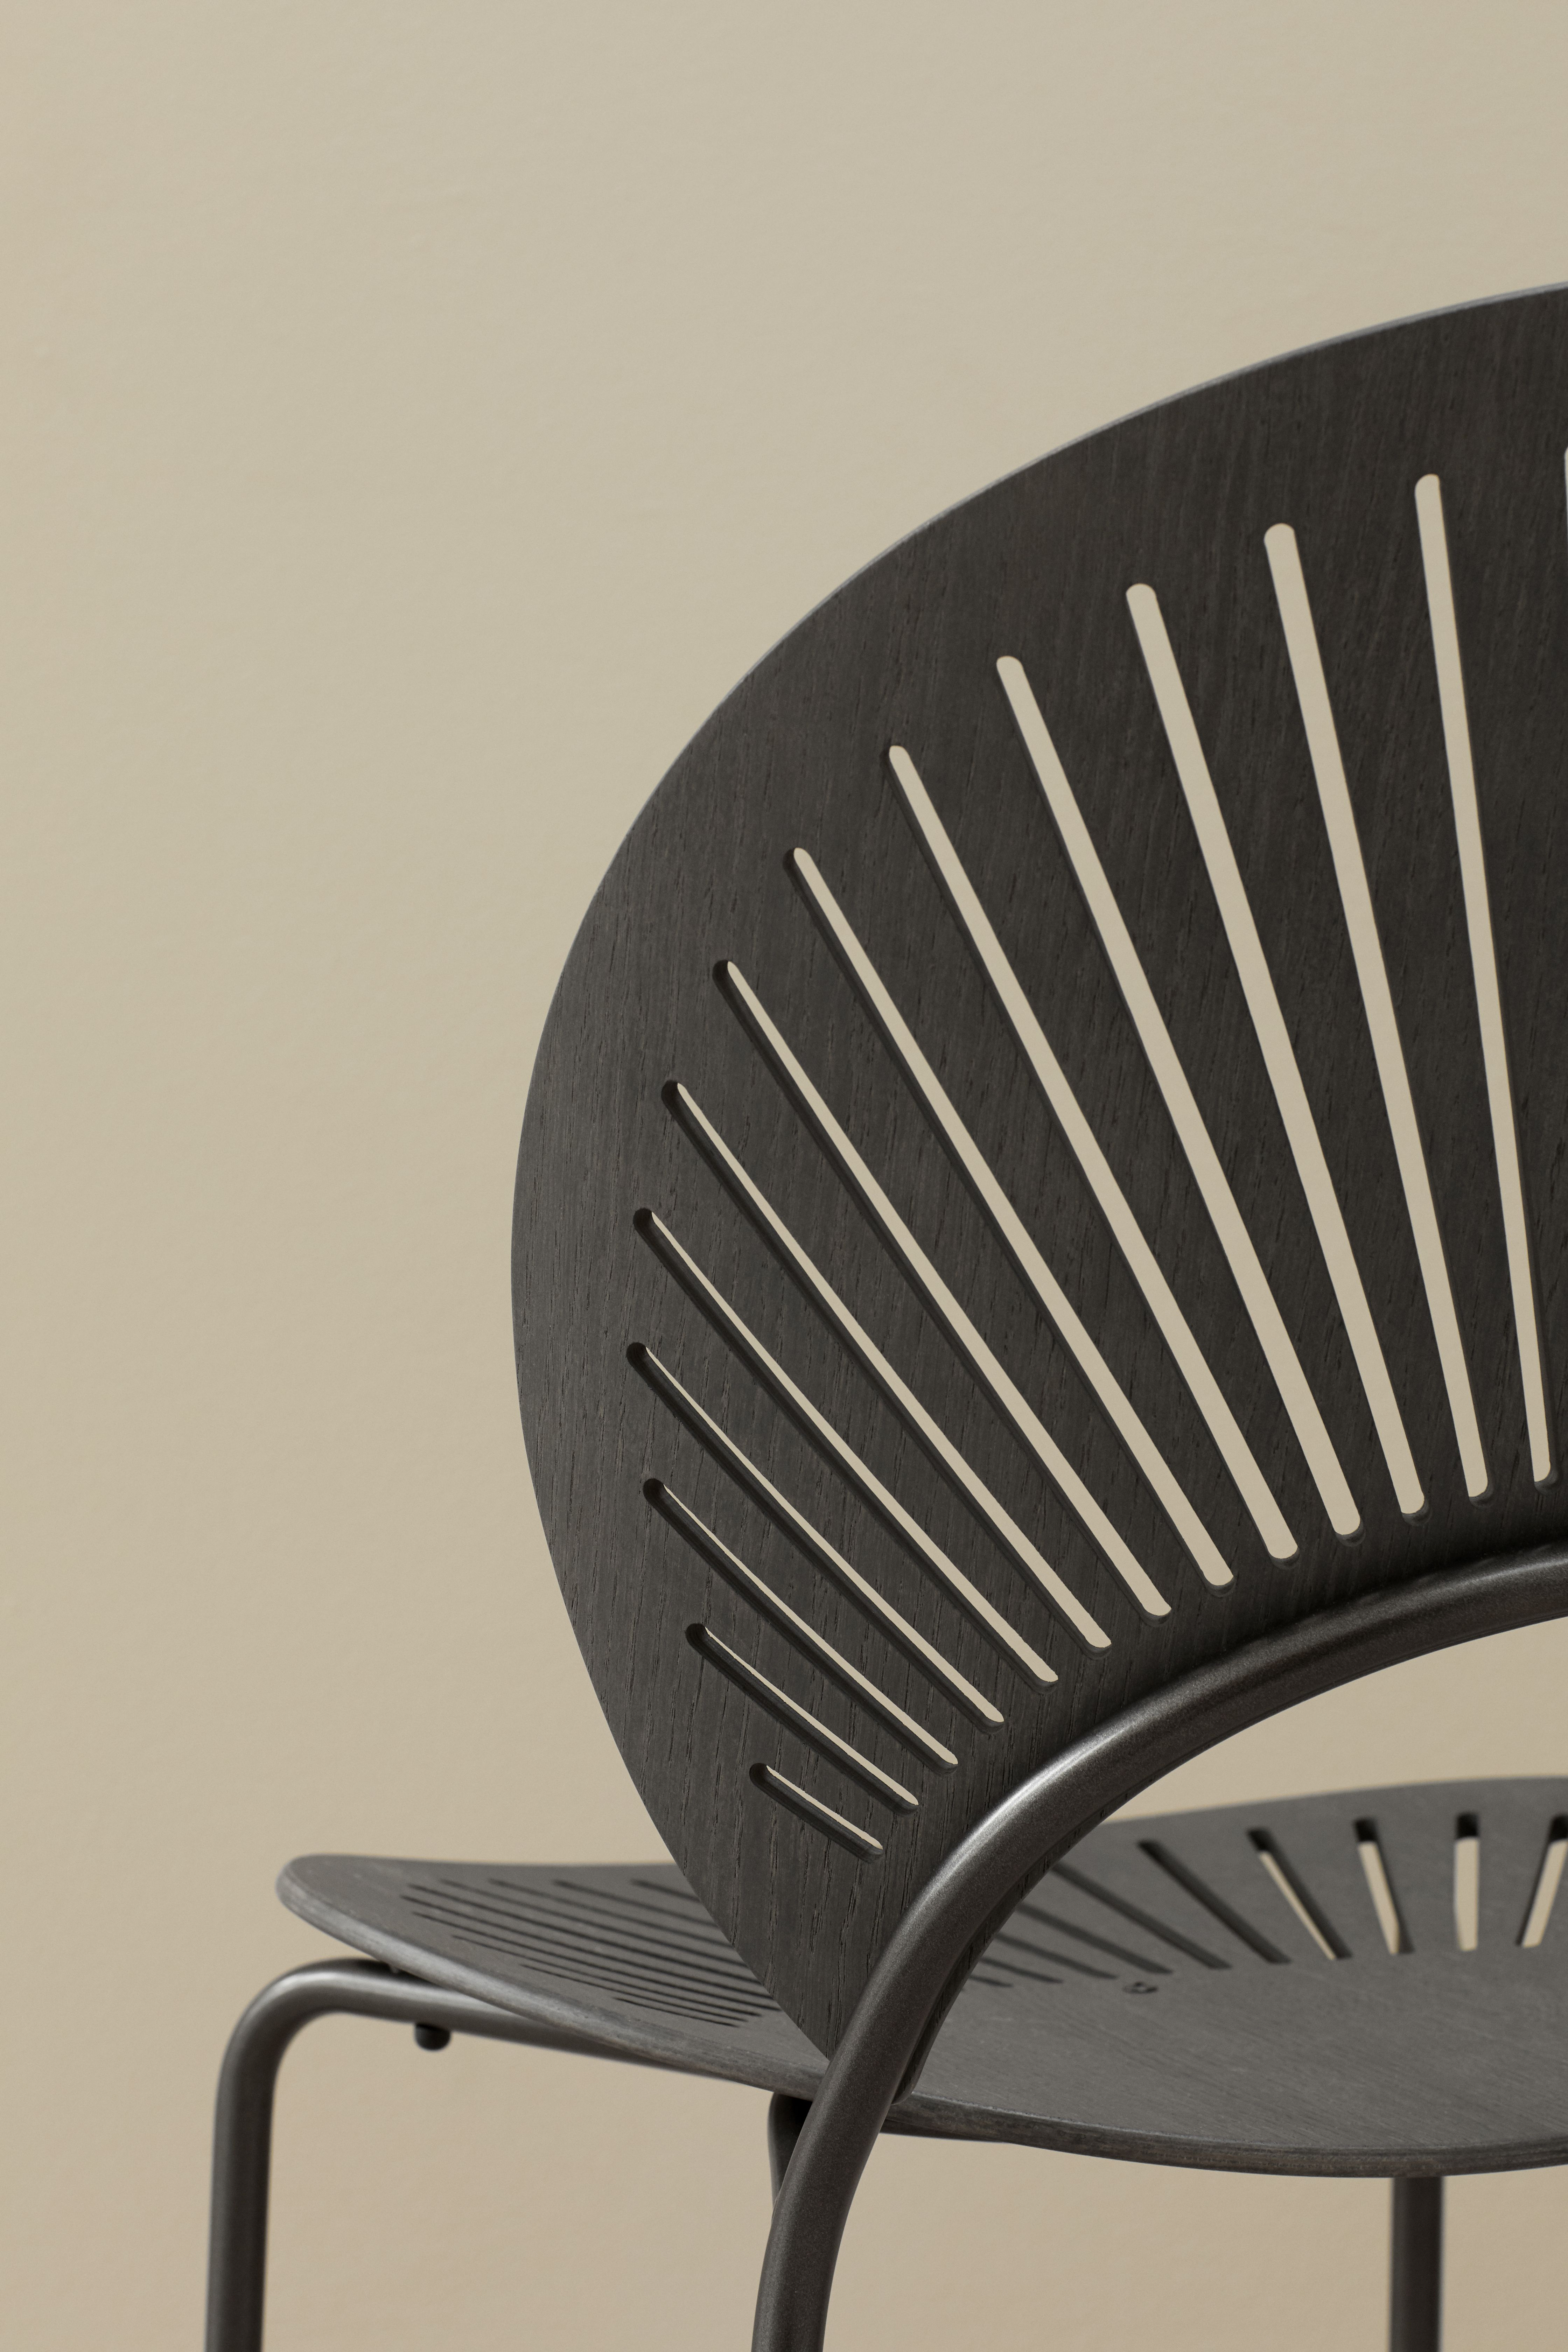 Fredericia The precise transparency of the Trinidad chair